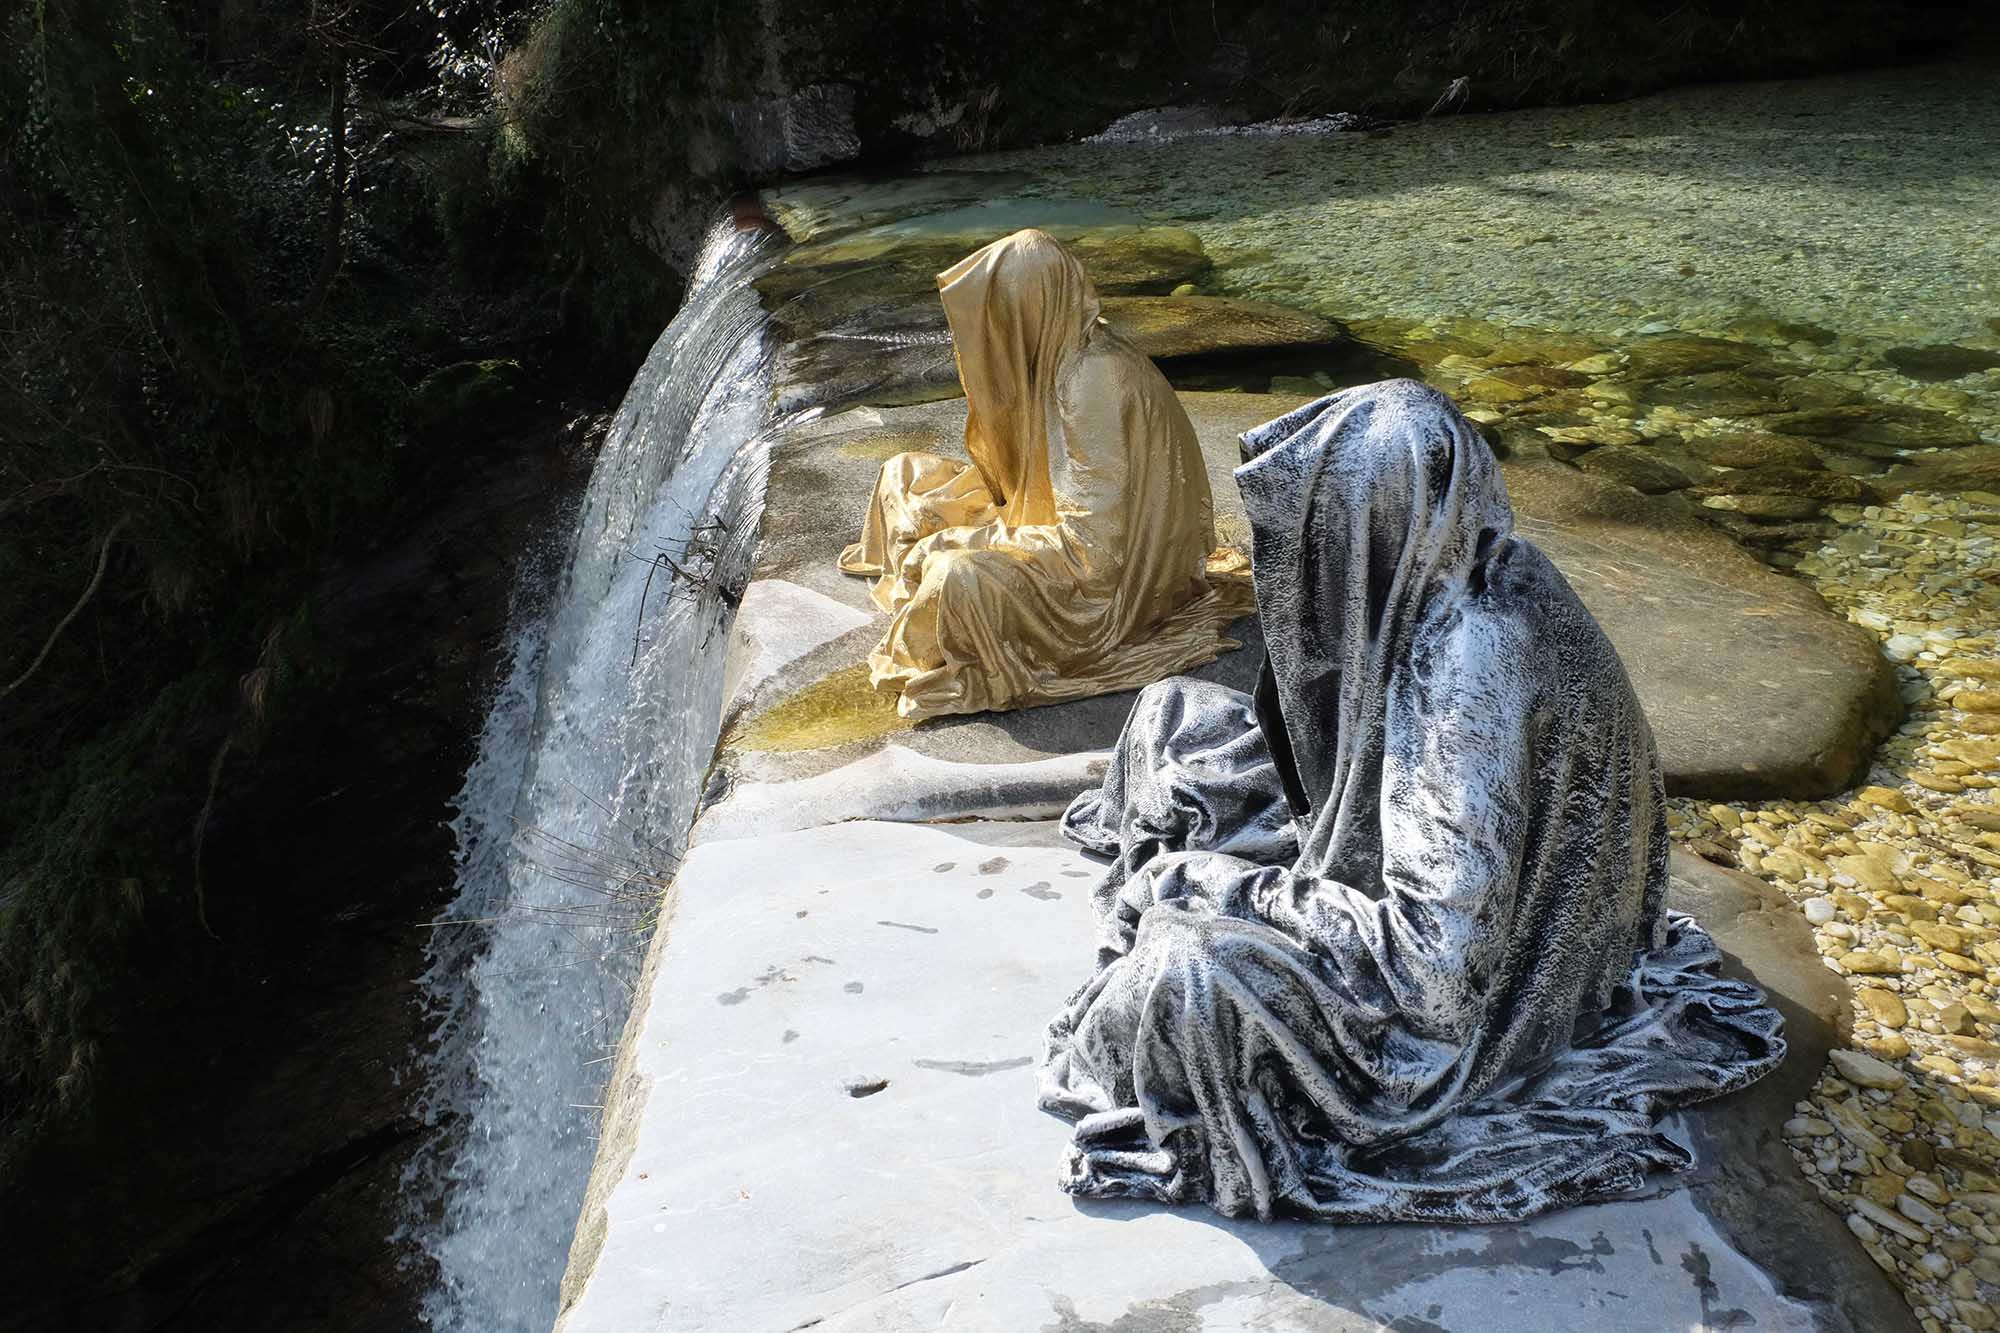 guardians of time manfred kili kielnhofer modern sculpture contemporary fine art design arts statue faceless religion stone marble carrara 1555